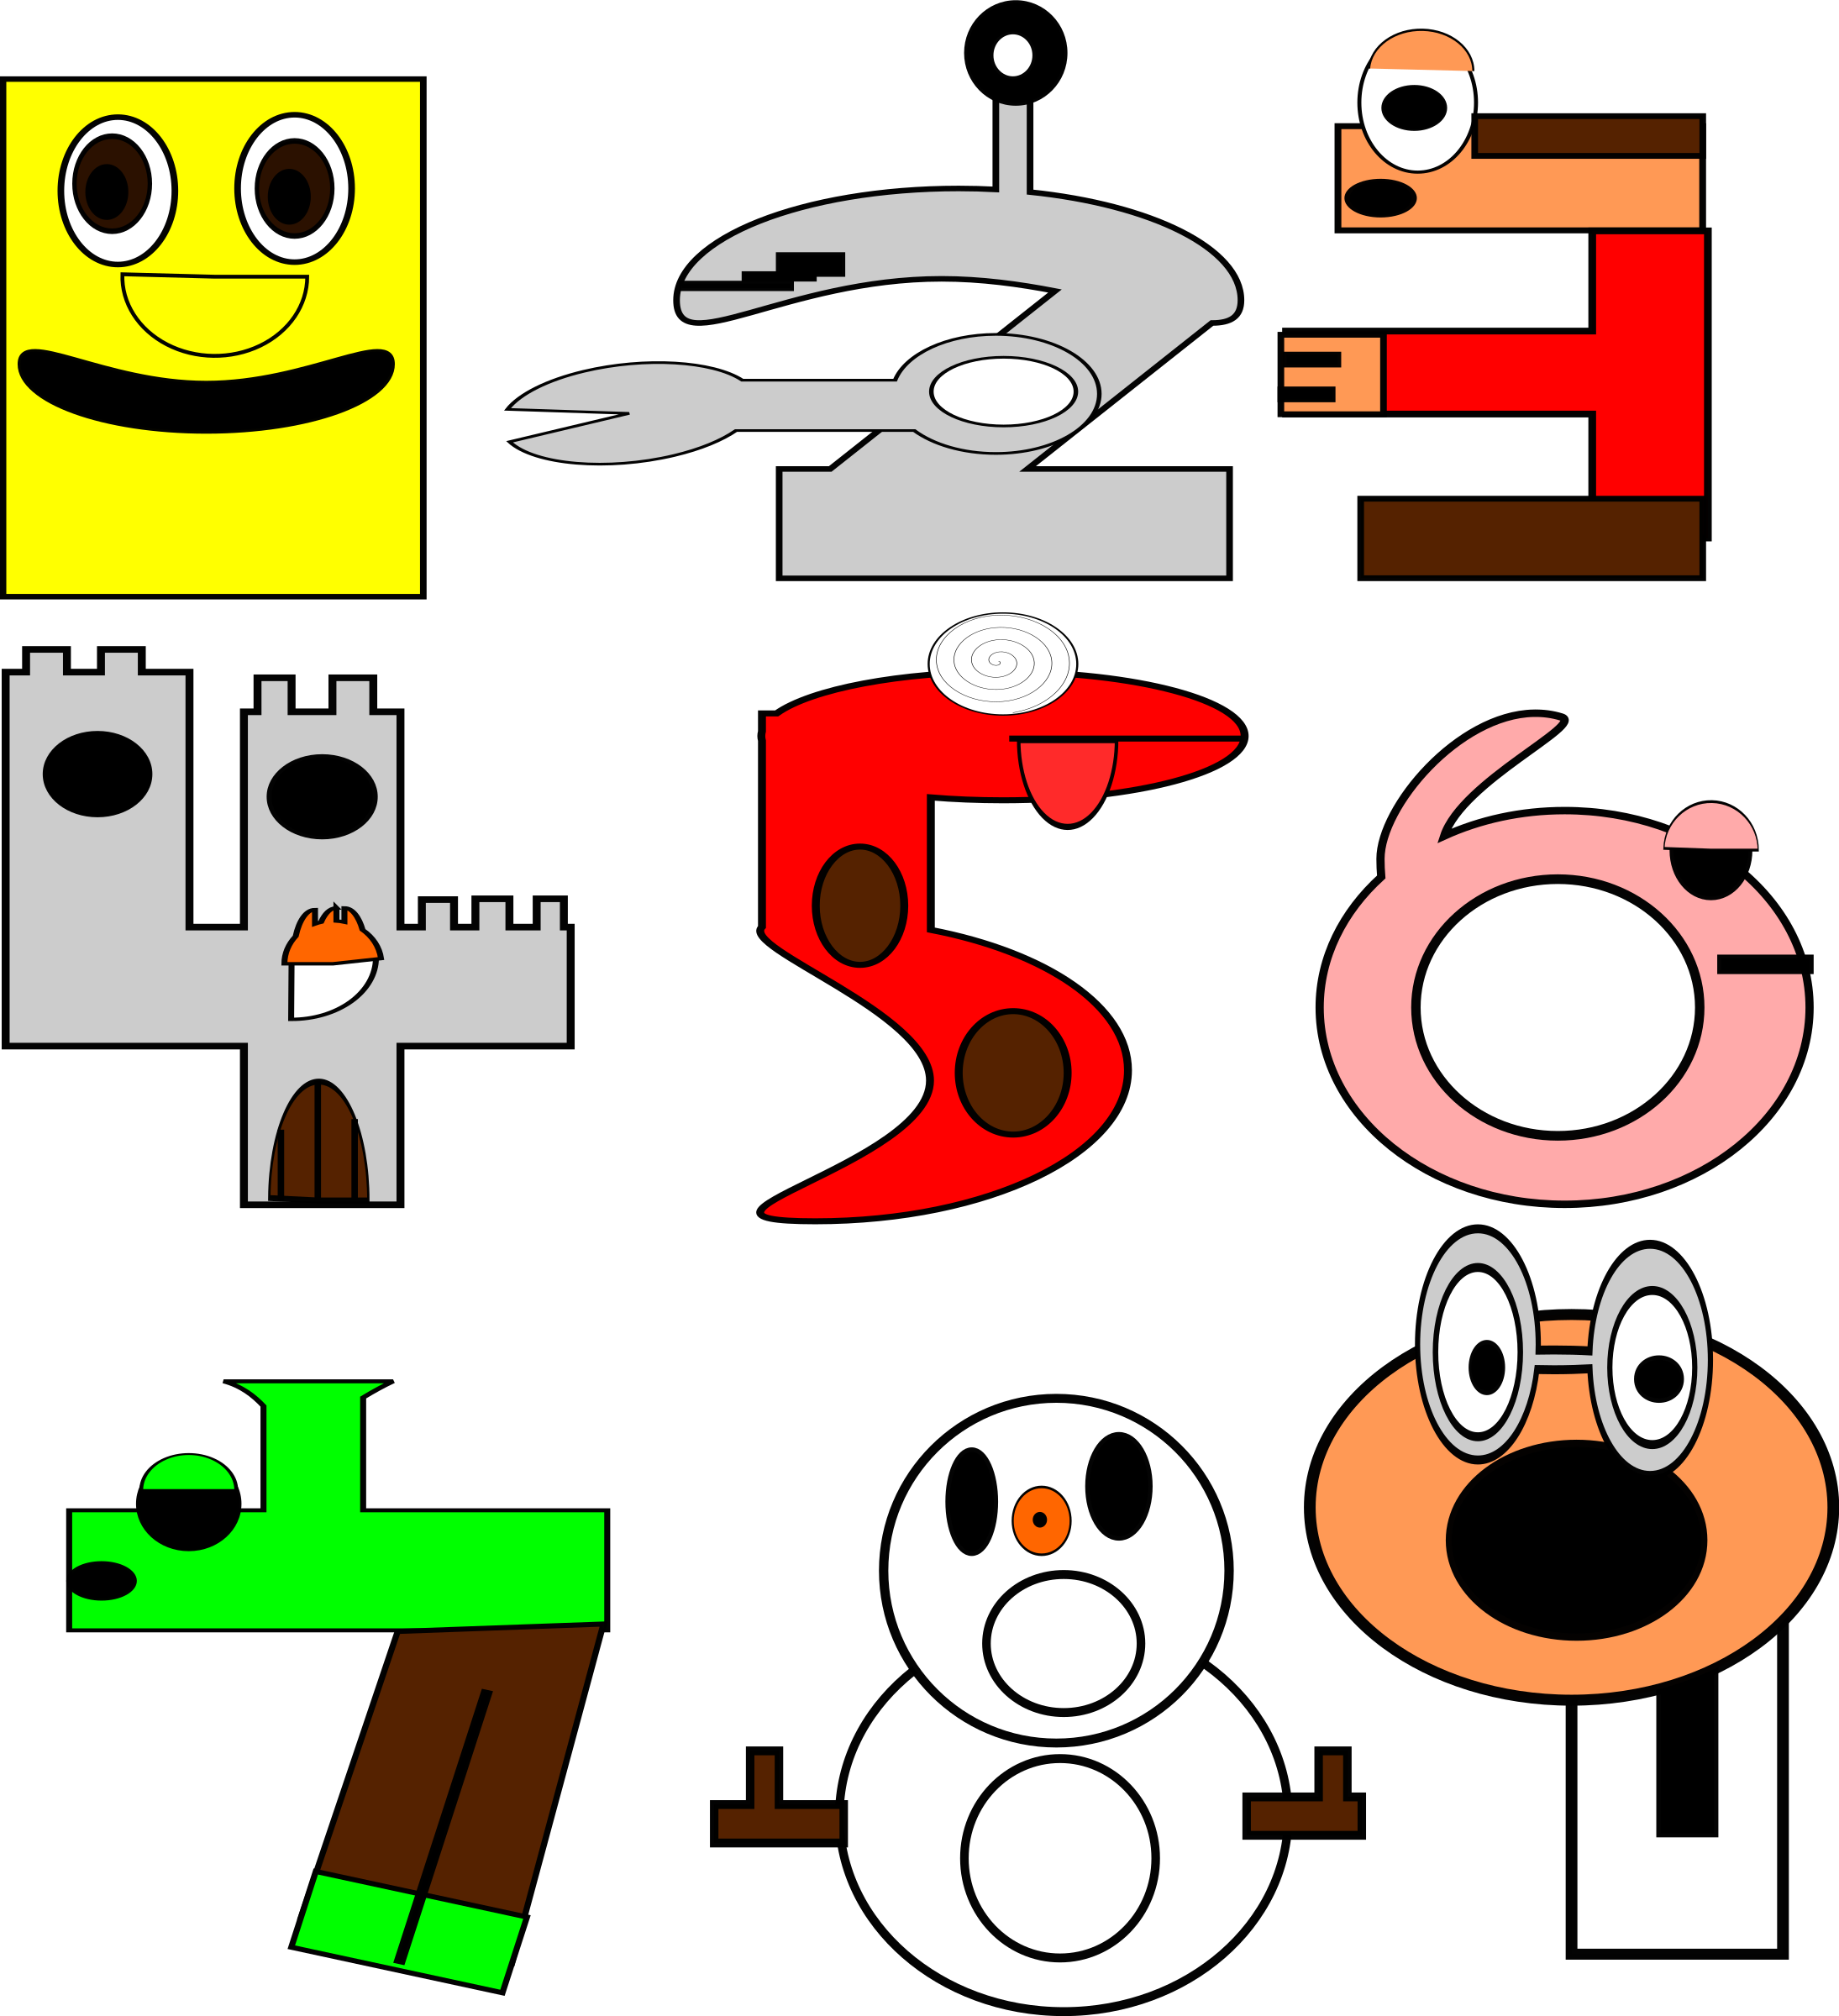 Numbers big image png. Number 1 clipart number person